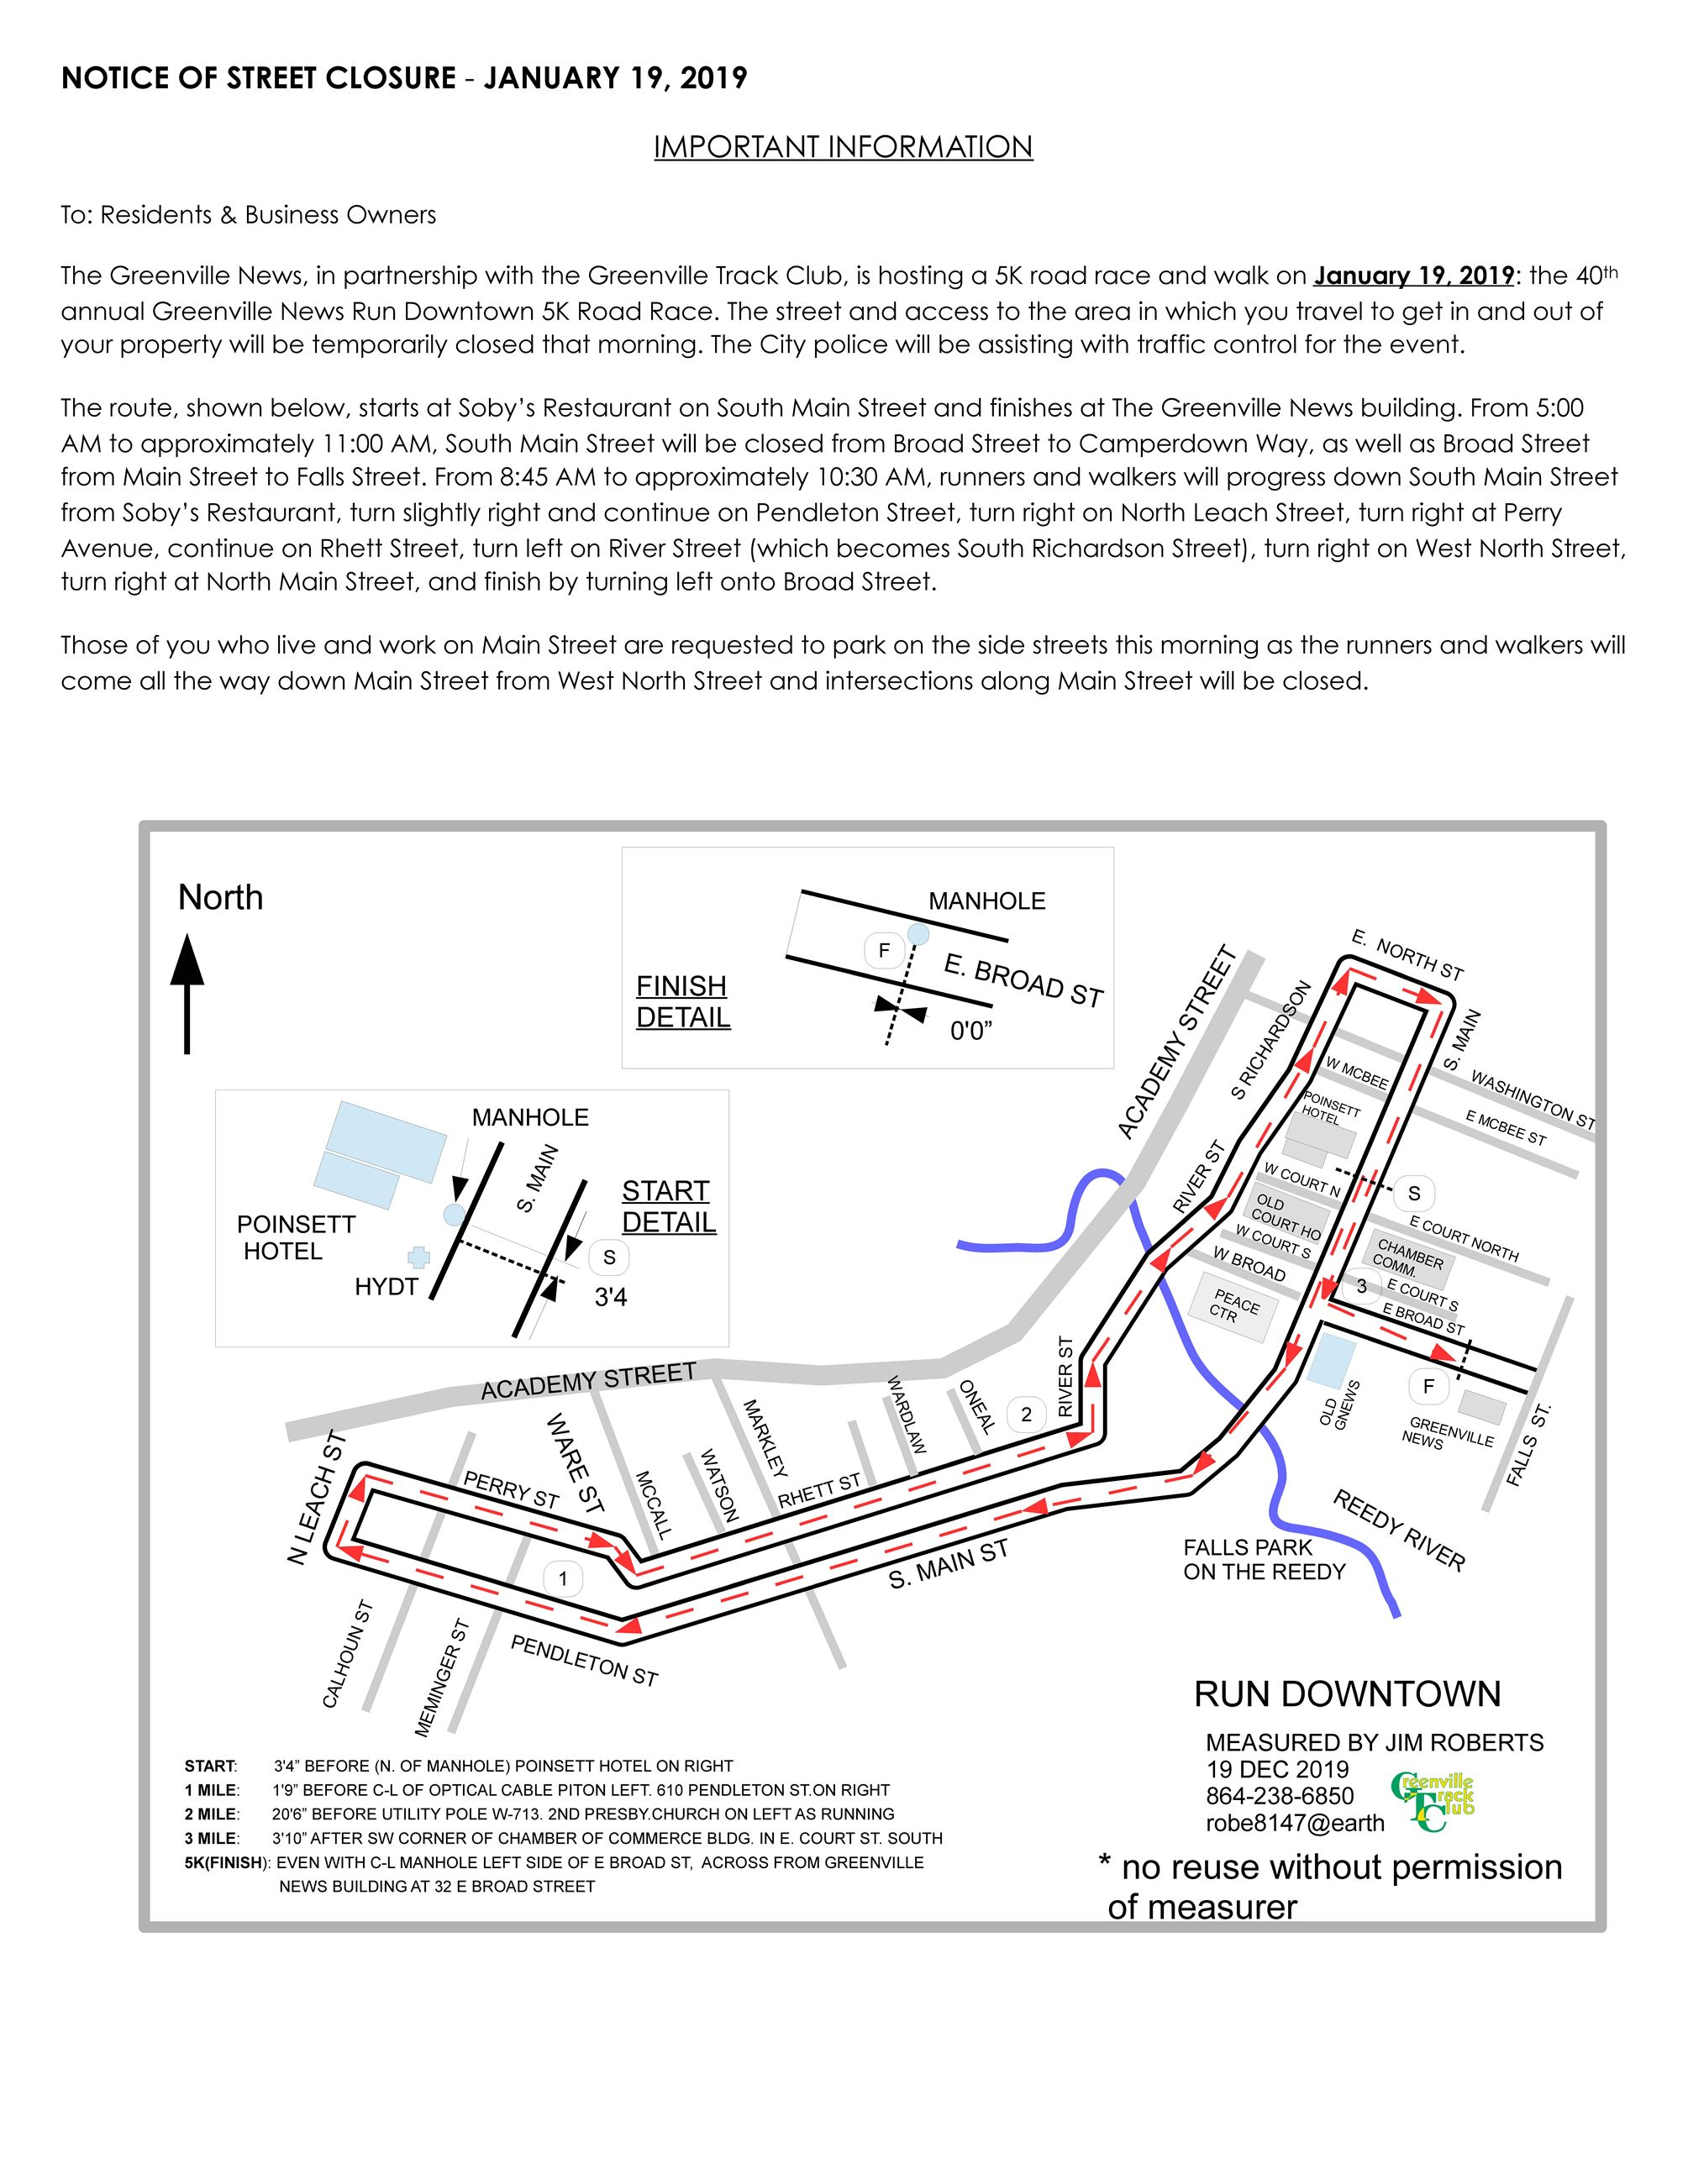 NOTICE OF STREET CLOSURE 2019 - Greenville News Run_Page_1